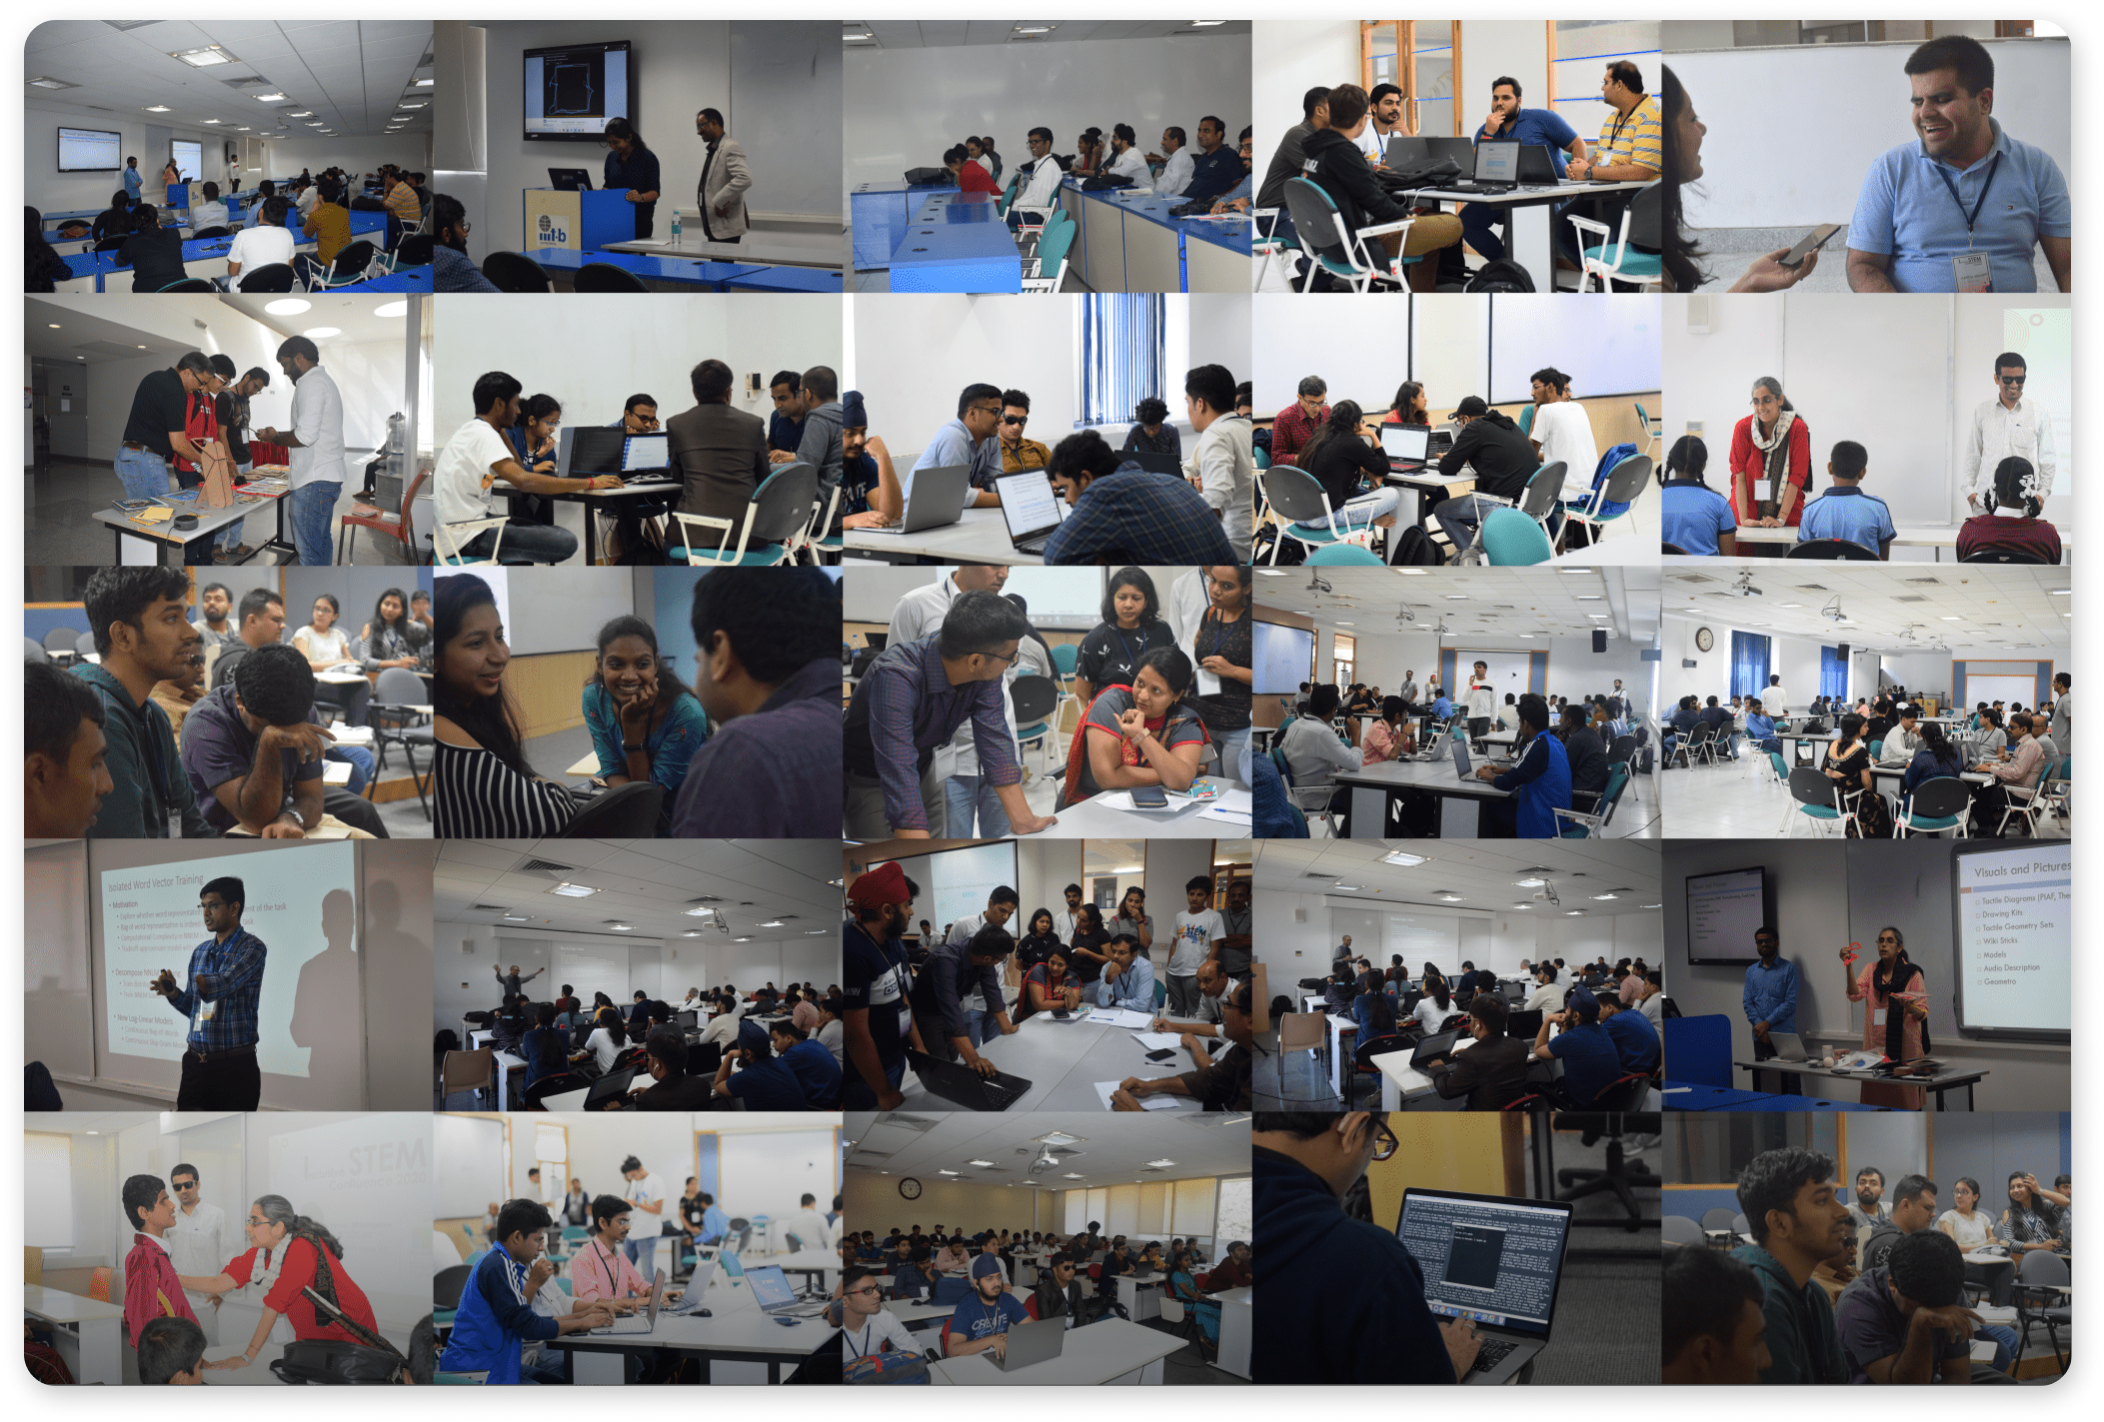 Multiple pictures from I-stem hackathon about I-stem team, volunteers, hackathon participants